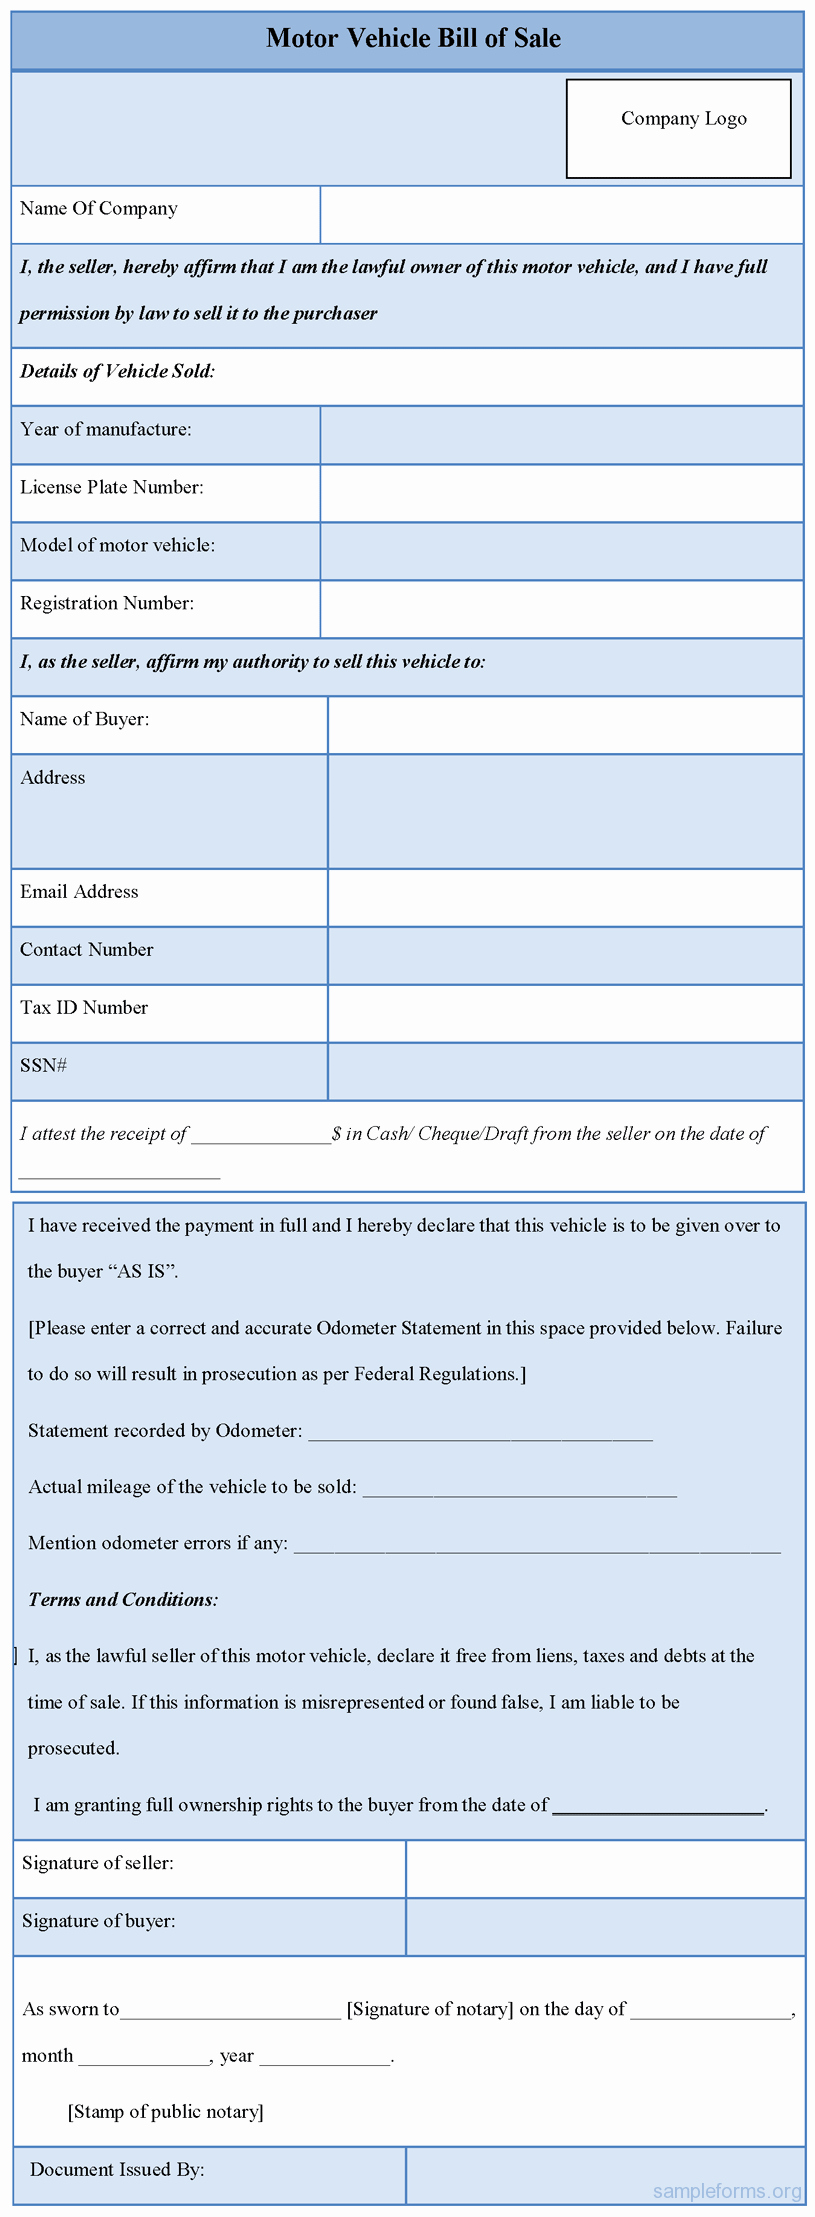 Vehicle Bill Of Sale forms Best Of Motor Vehicle Bill Of Sale form Sample forms